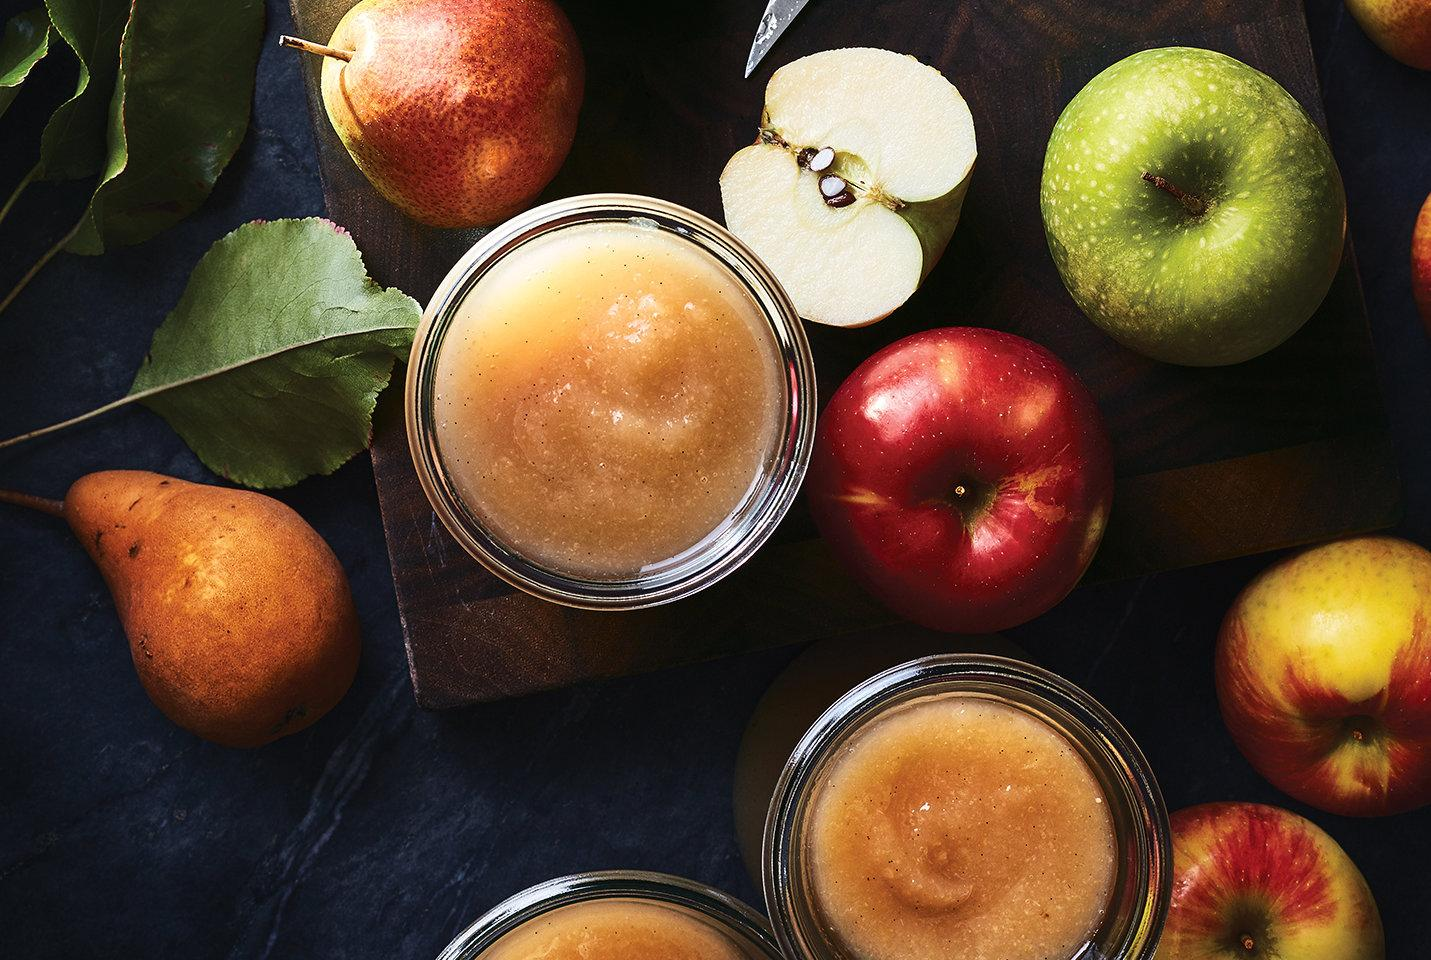 This Homemade Applesauce Is So Easy You'll Make It Again and Again